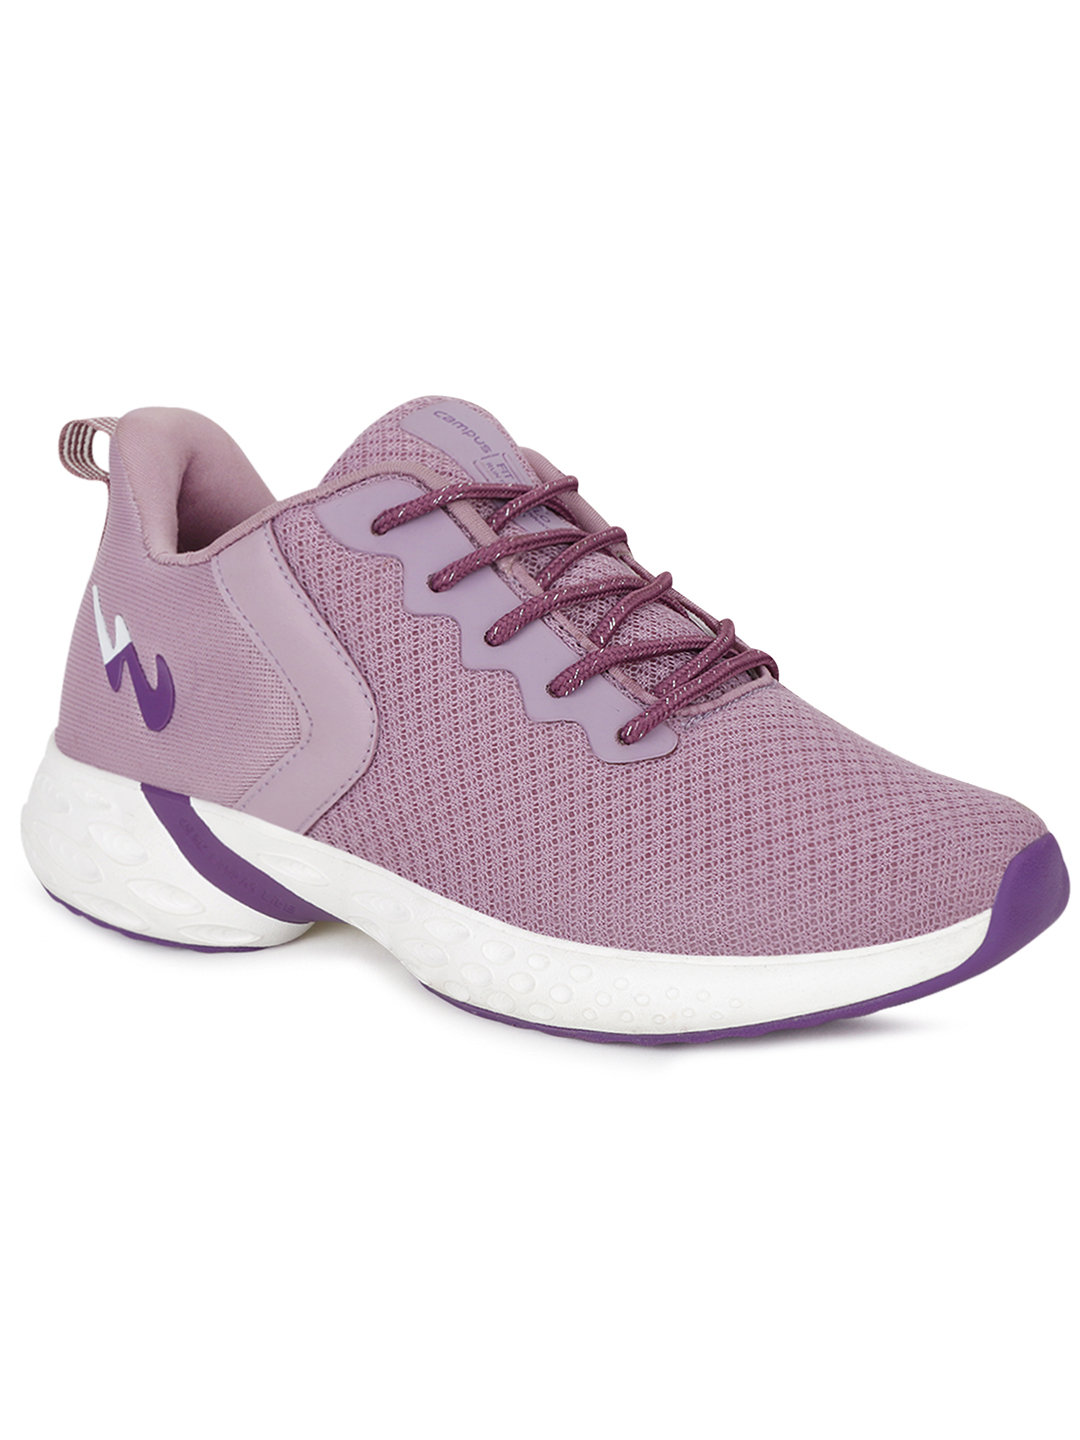 Campus Shoes | Purple Alice Running Shoes